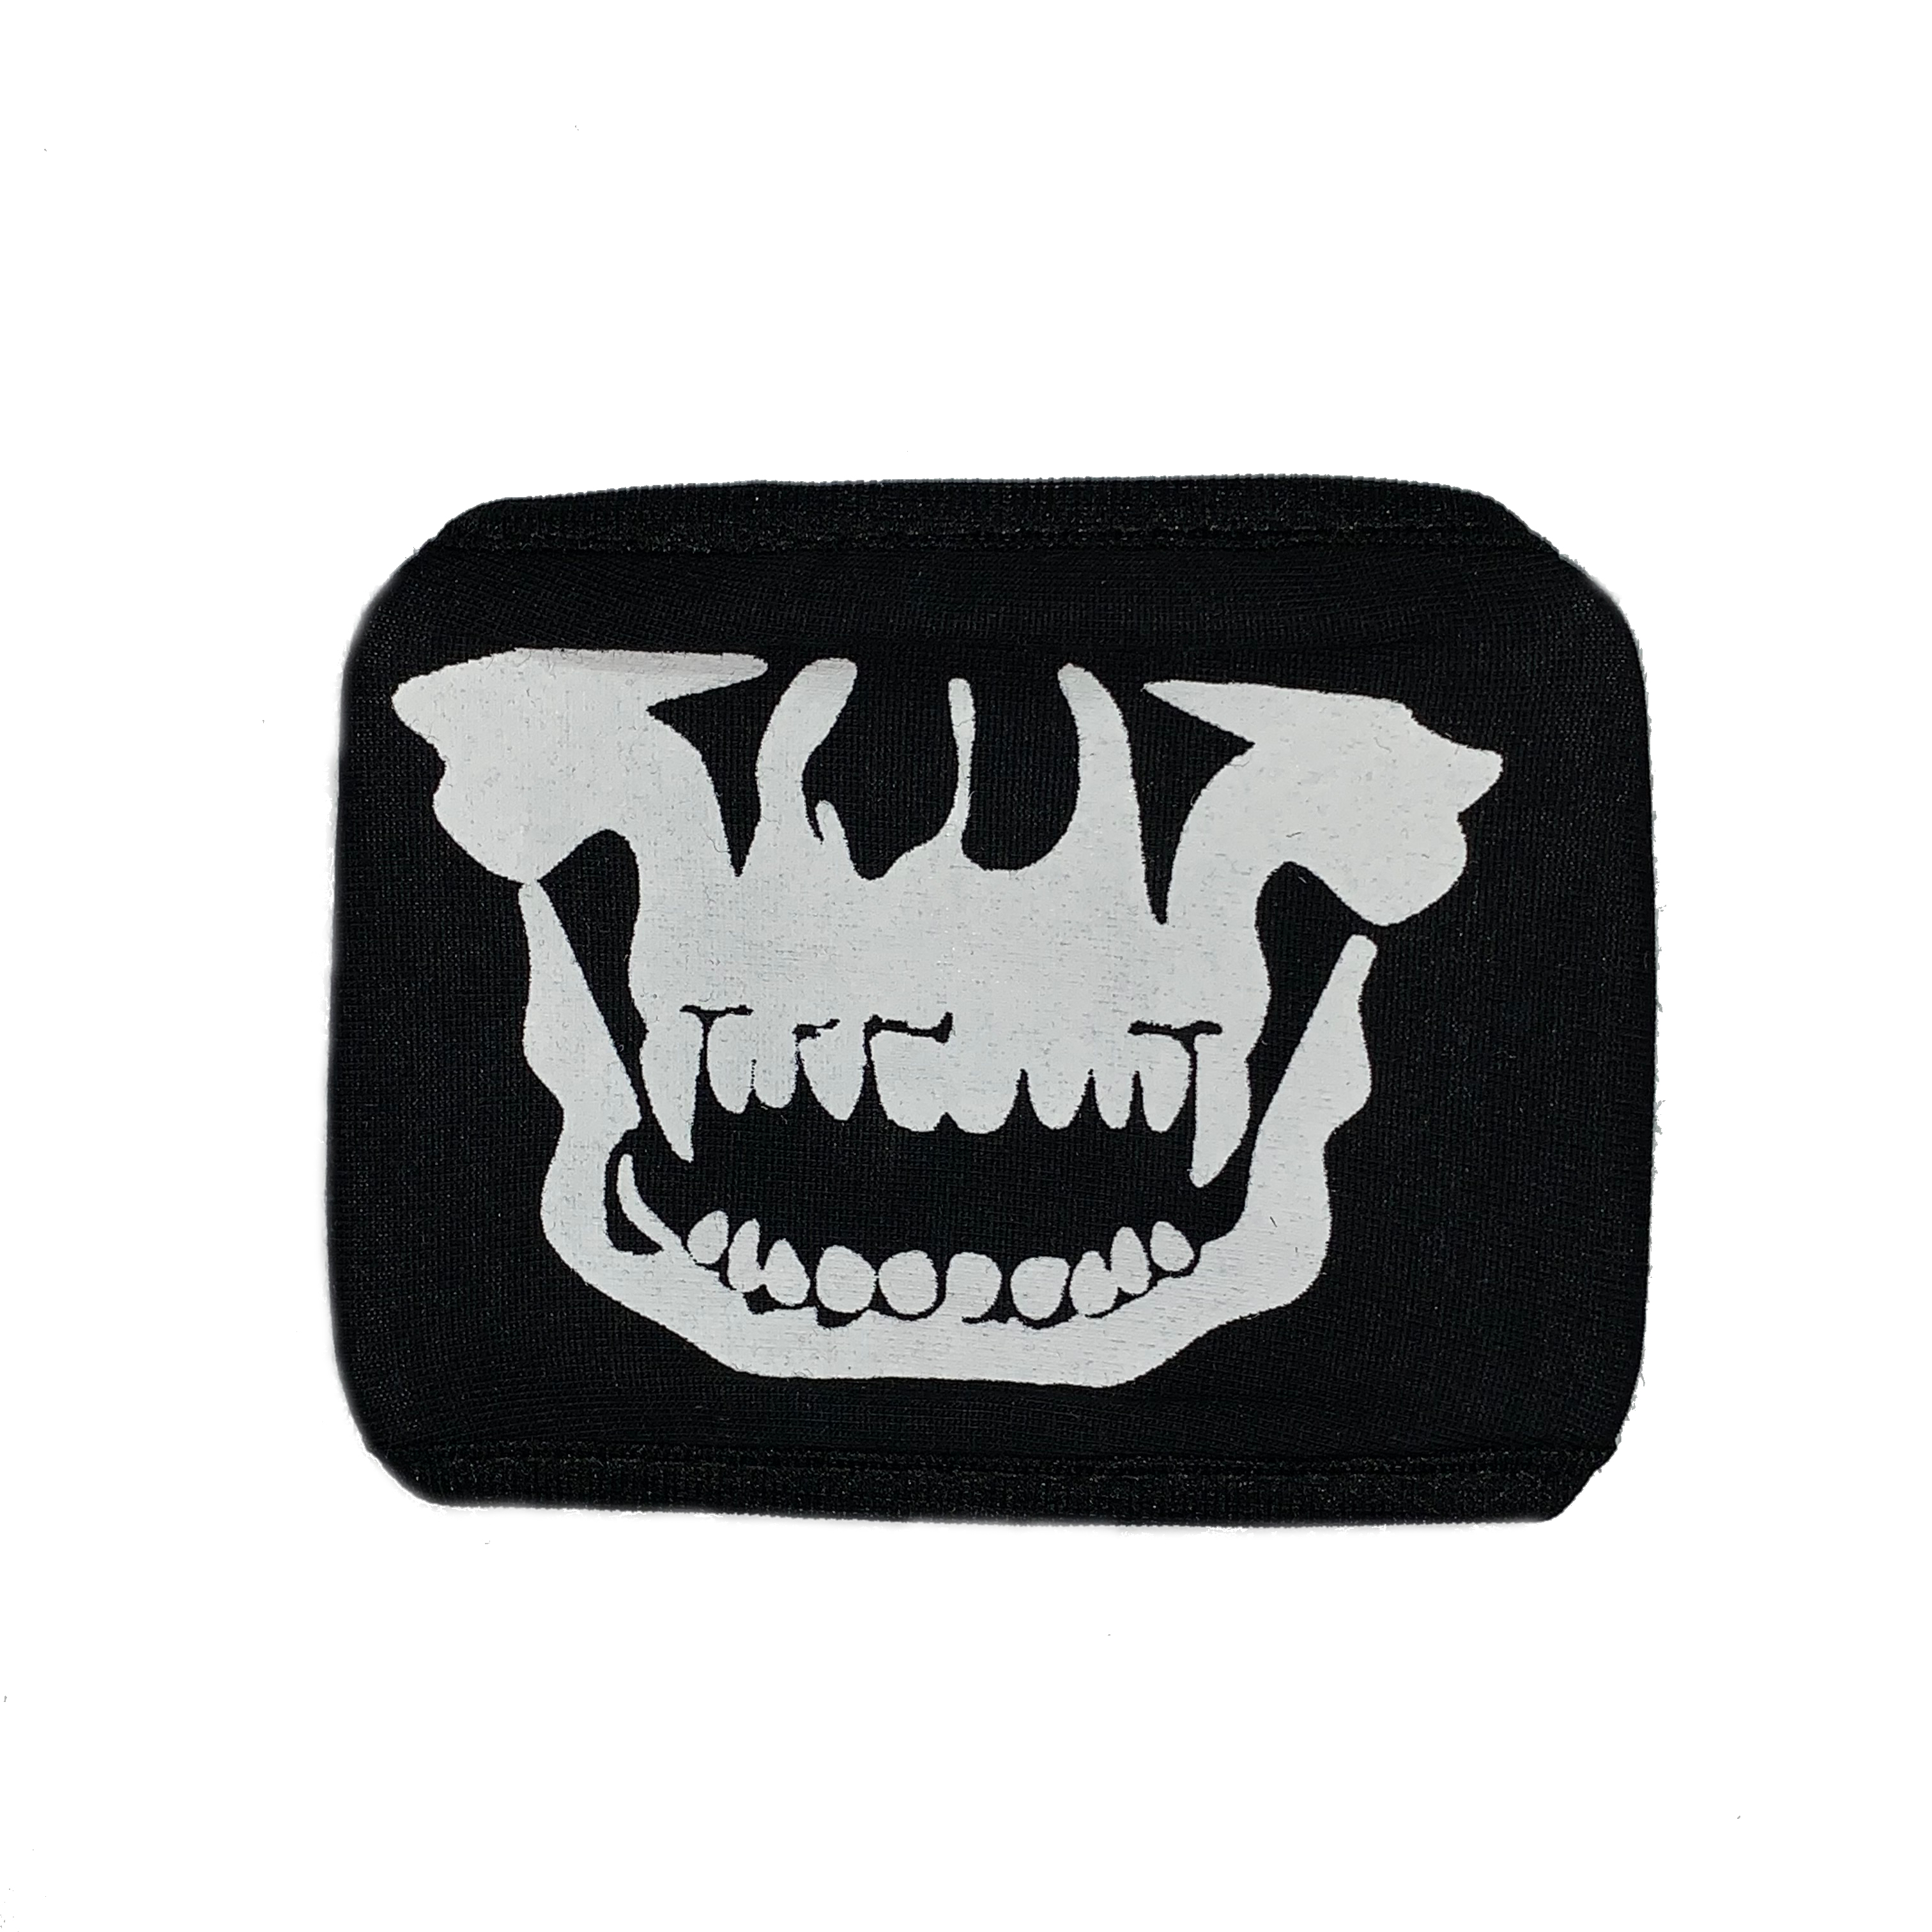 Cosplay Mask Face Mouth Mask Anime Skull Black One Size Fits Most